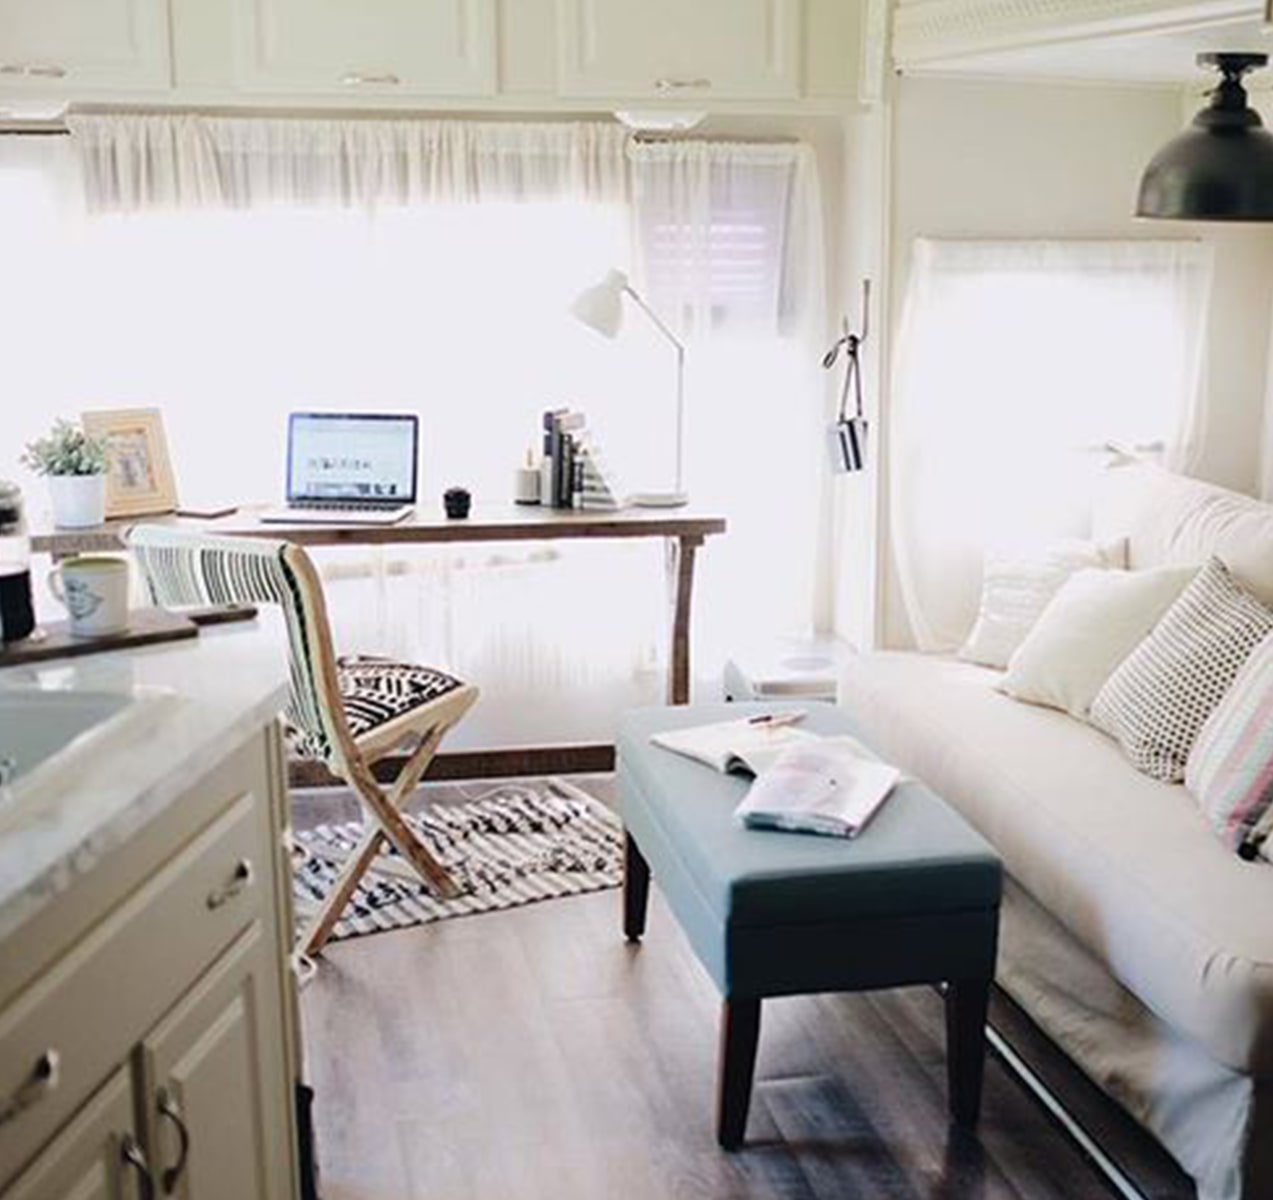 See this family's RV go from gloomy to glam after a DIY makeover